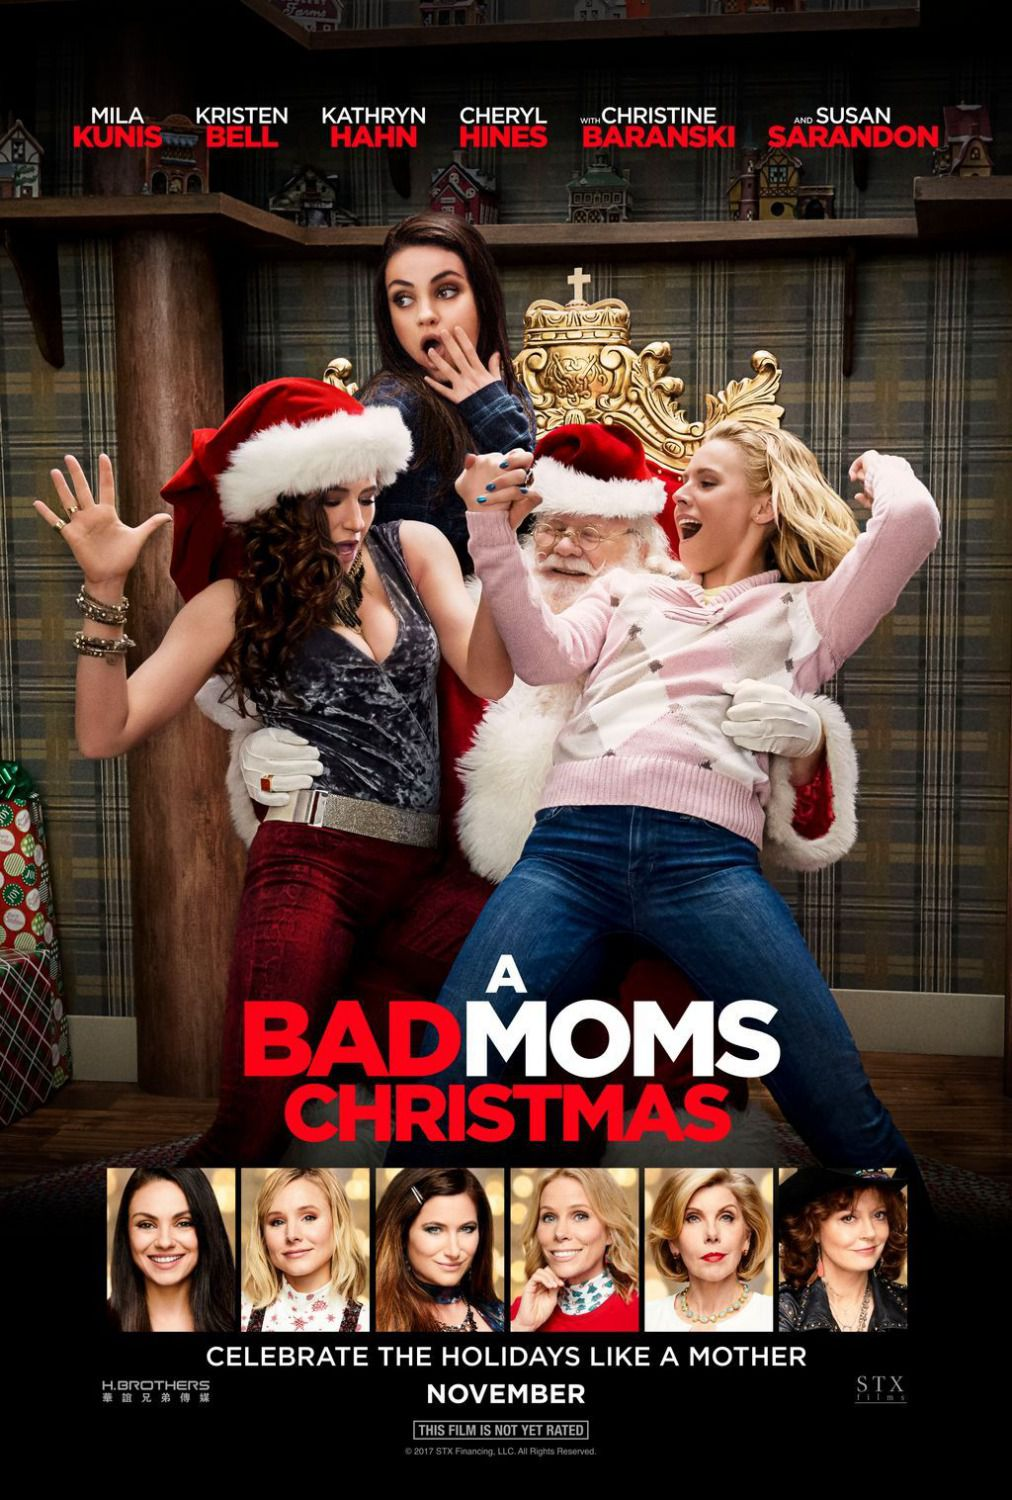 Bad Moms Christmas - Bad Moms 2 – Mamme molto più cattive - celebrate Holidays like a mother ... film poster - Mila Kunis - Kristen Bell - Kathryn Hahn - Cheryl Hines - Christine Baranski - Susan Sarandon